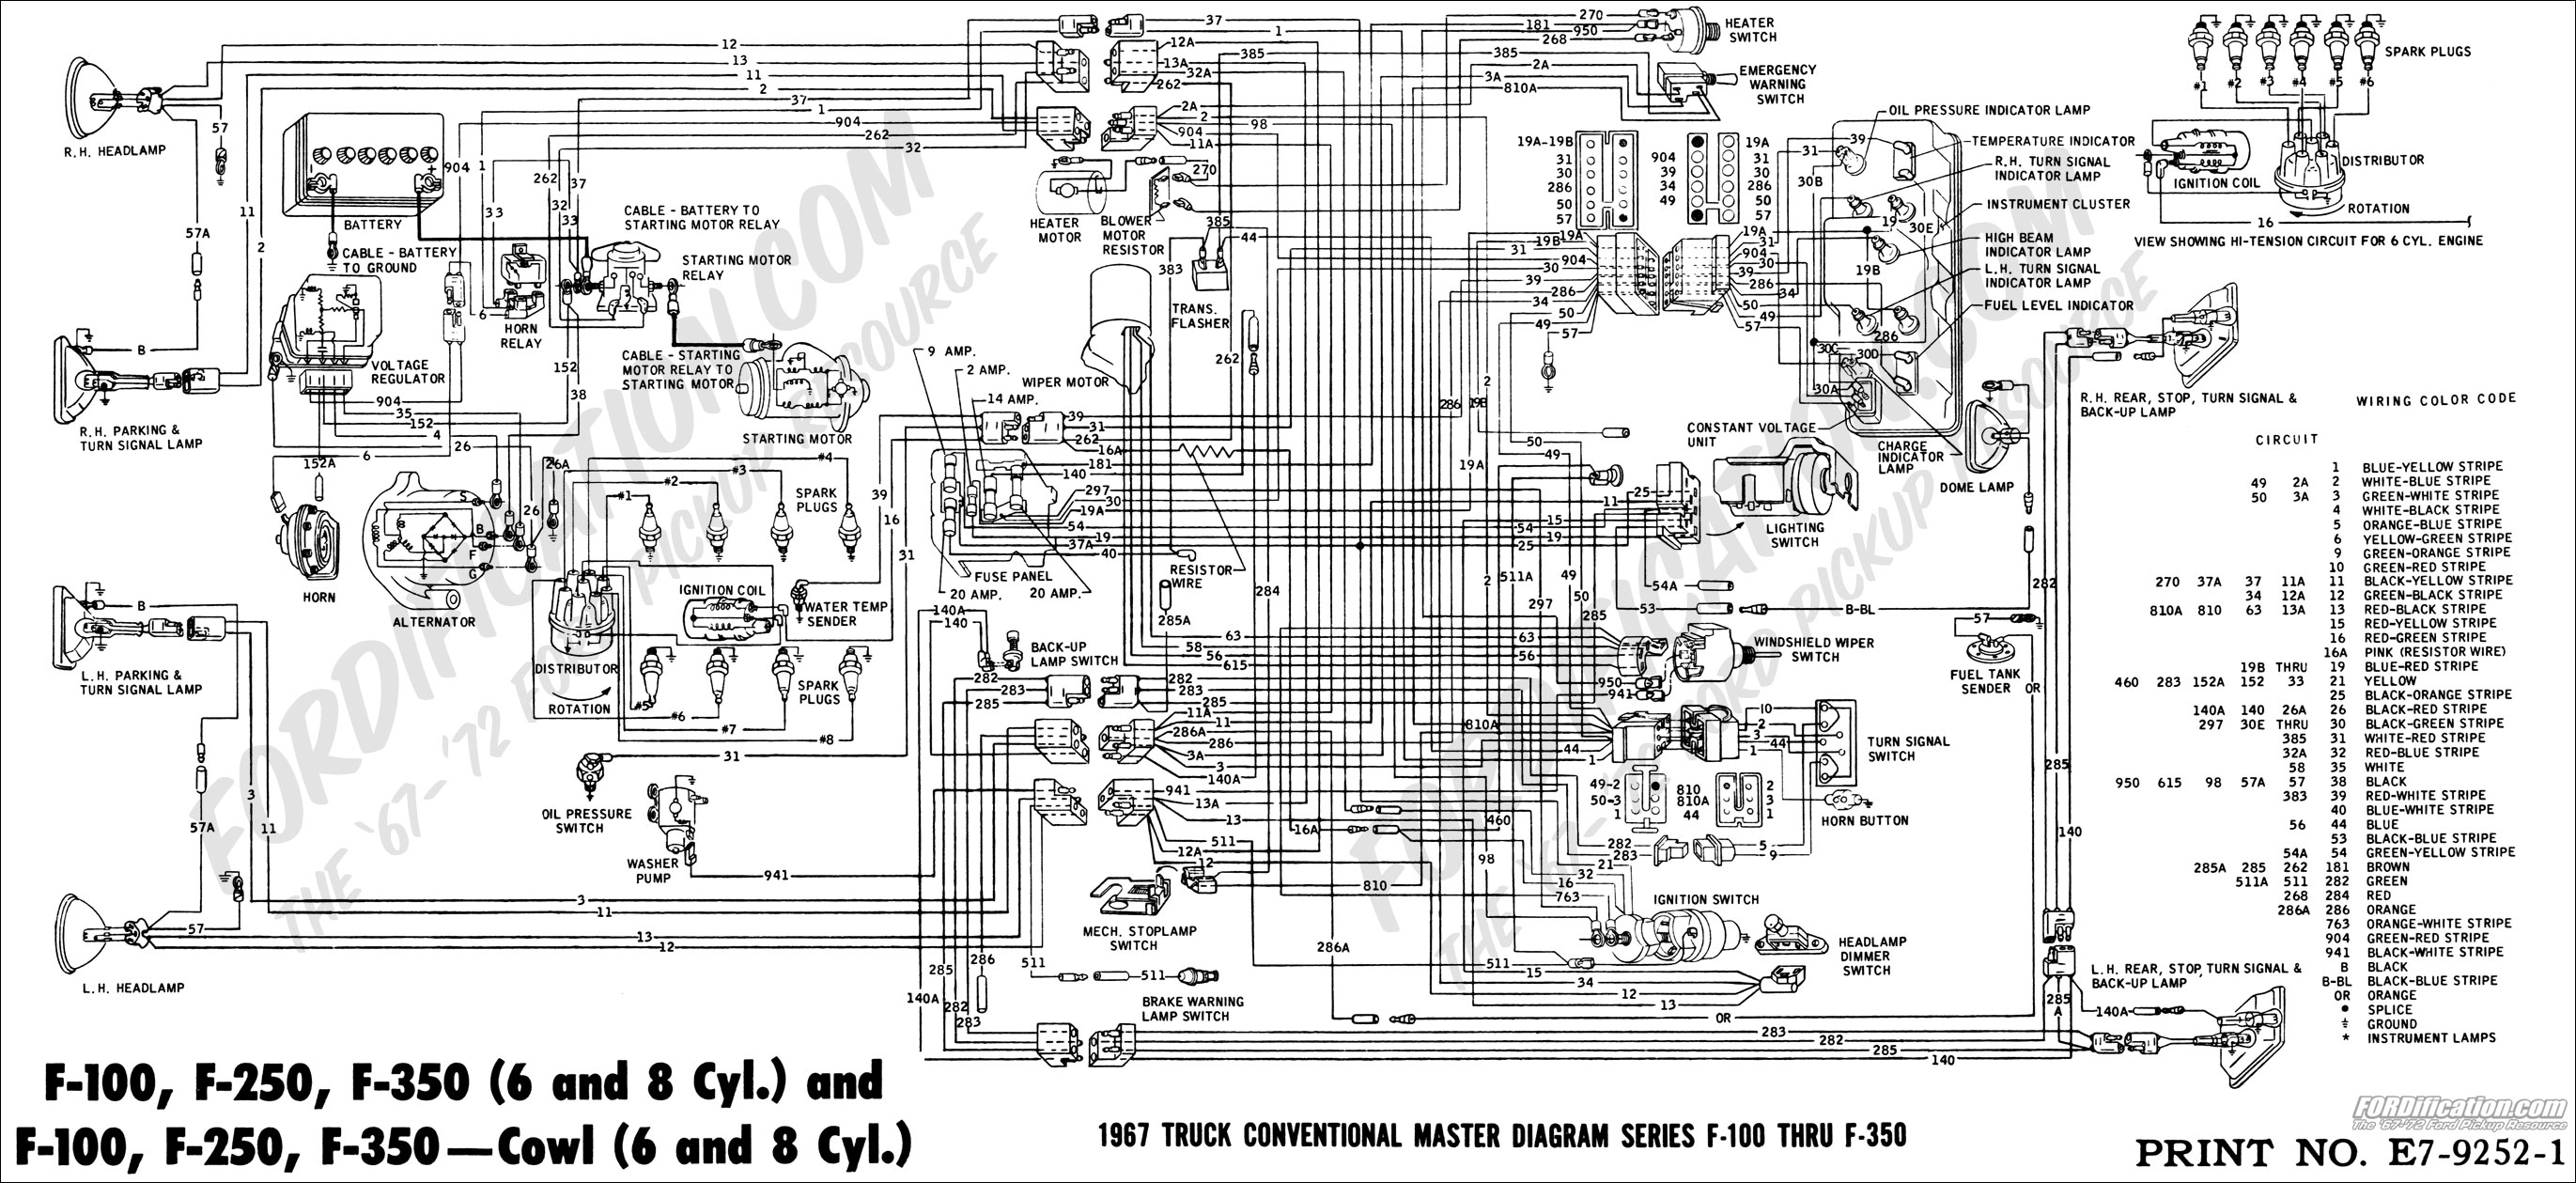 ford ranger alternator wiring diagram euglena labeled 400 magnification f100 10 21 tefolia de 1962 truck all data 1968